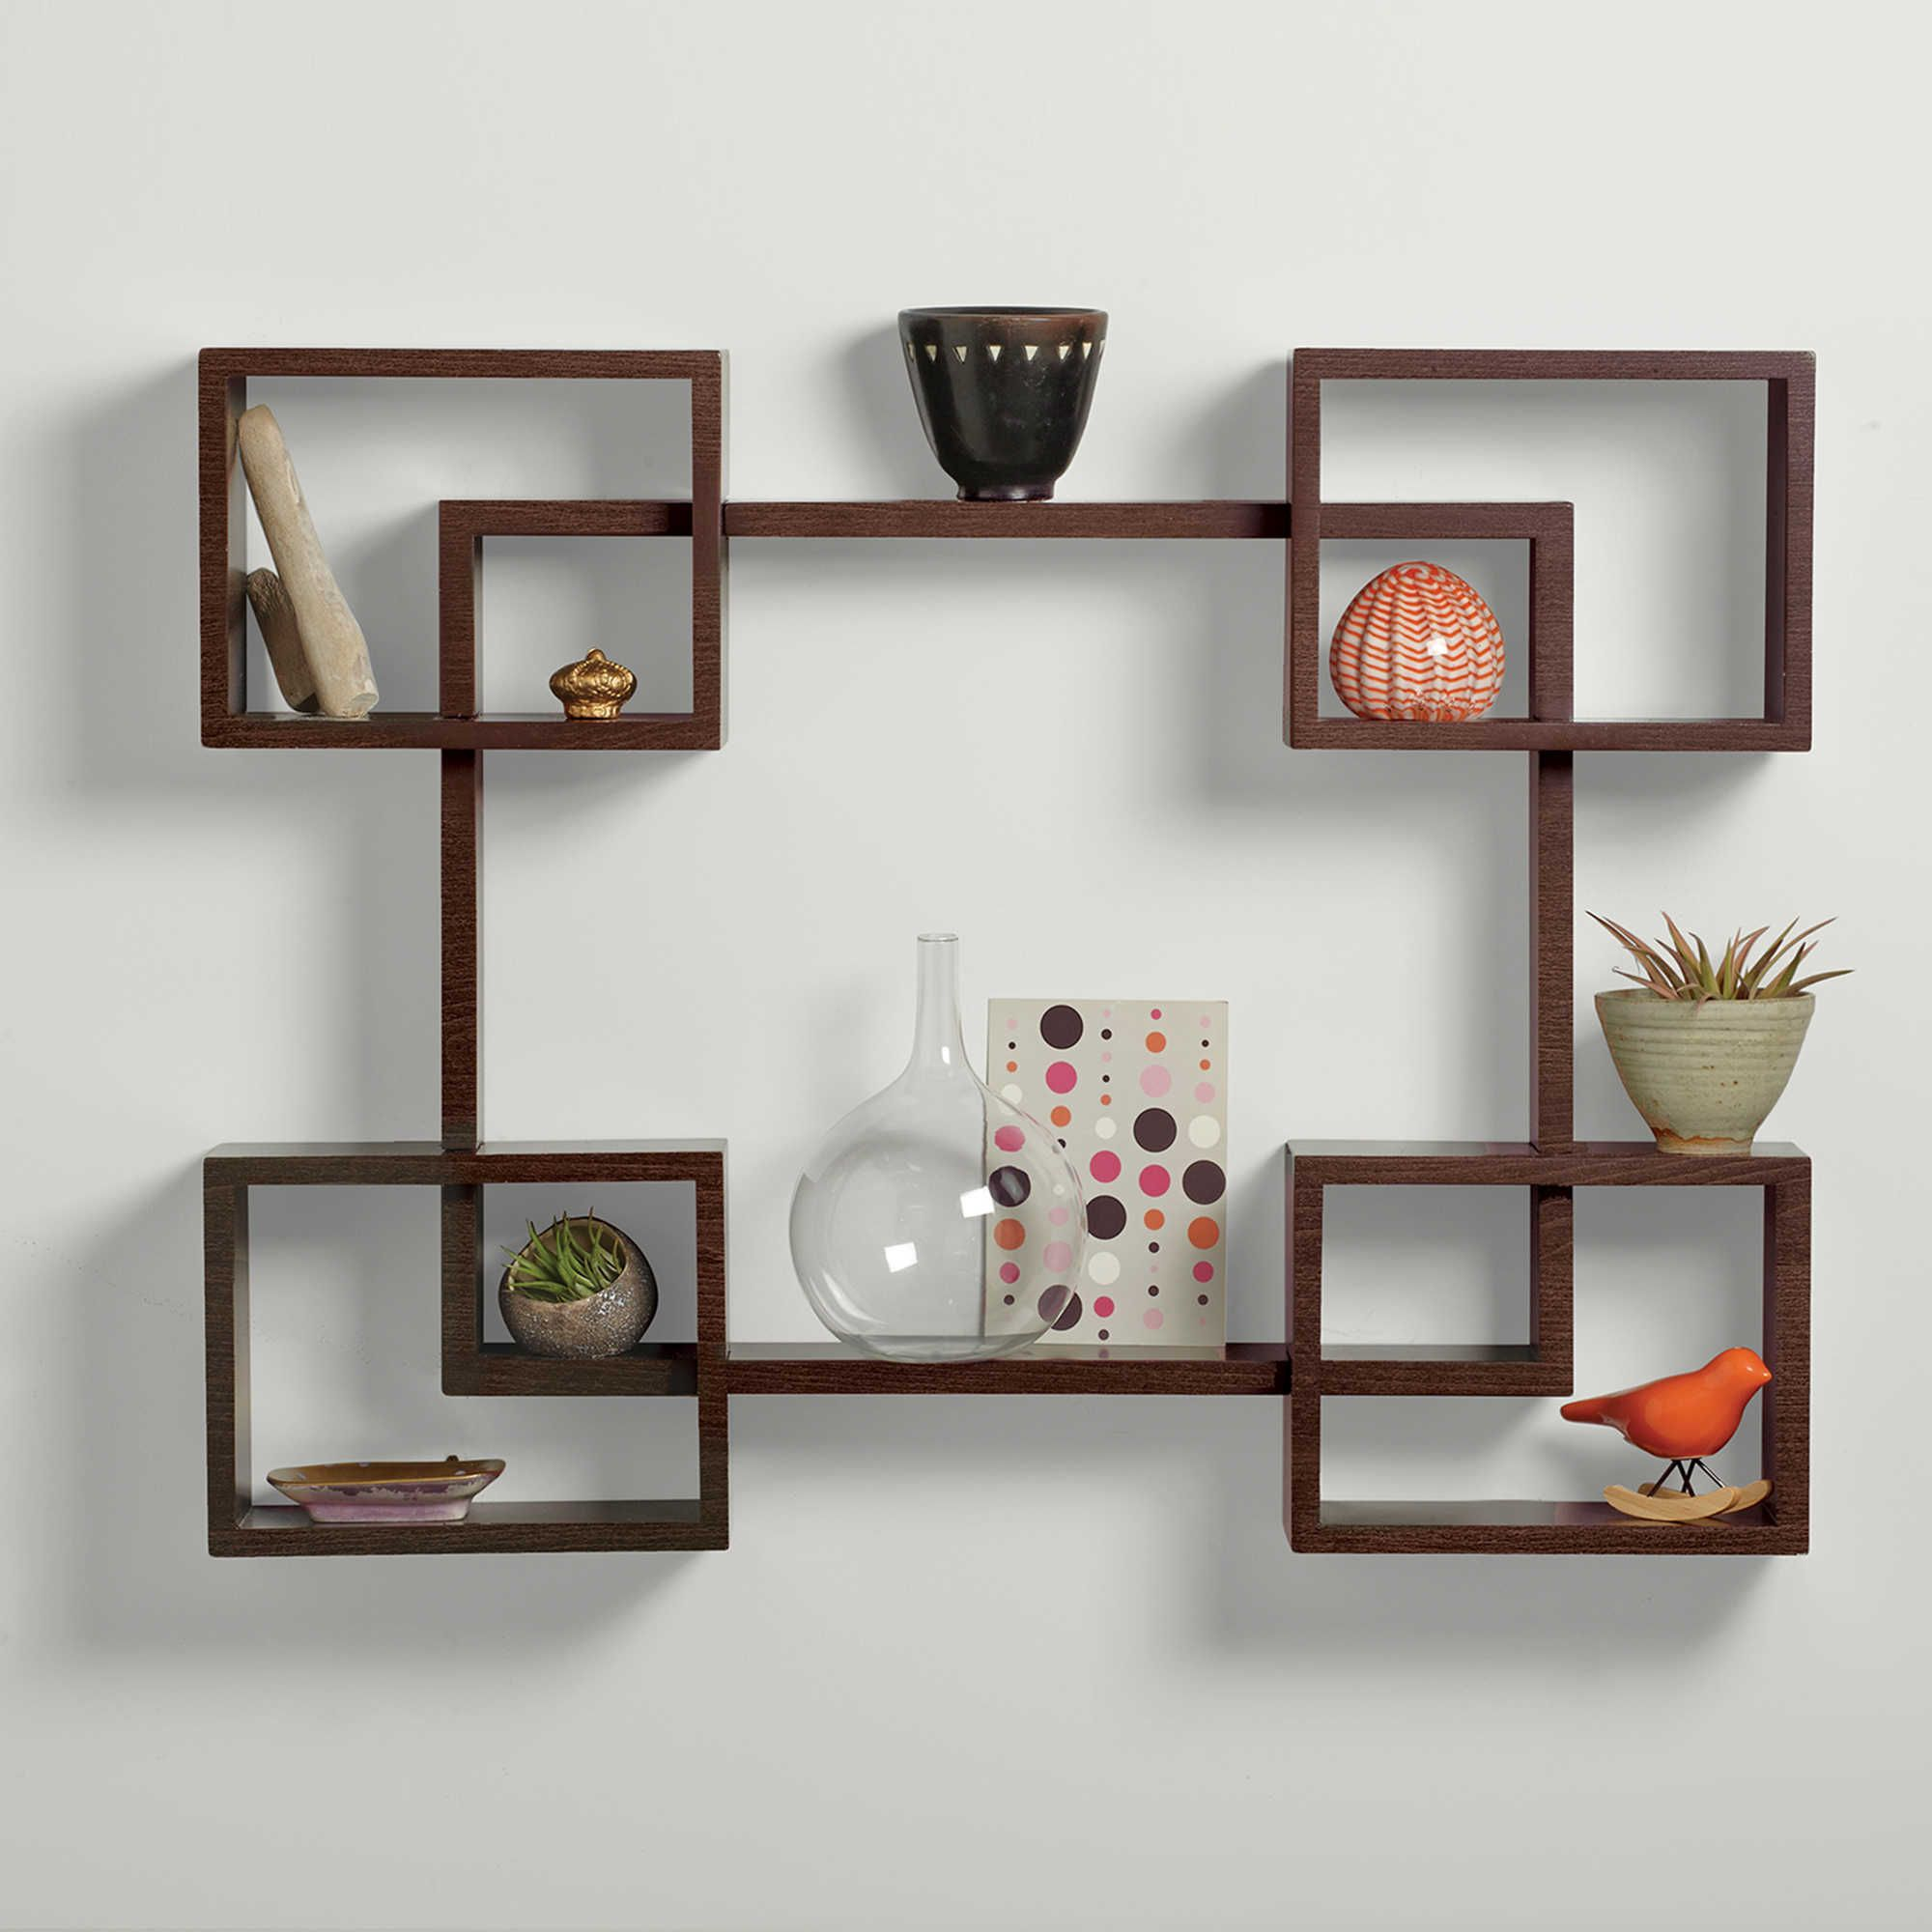 Picking The Perfect Floating Shelf For Your House Can Be An Intense Process Shelving Isn T S Wall Shelves Living Room Wall Shelves Bedroom Unique Wall Shelves